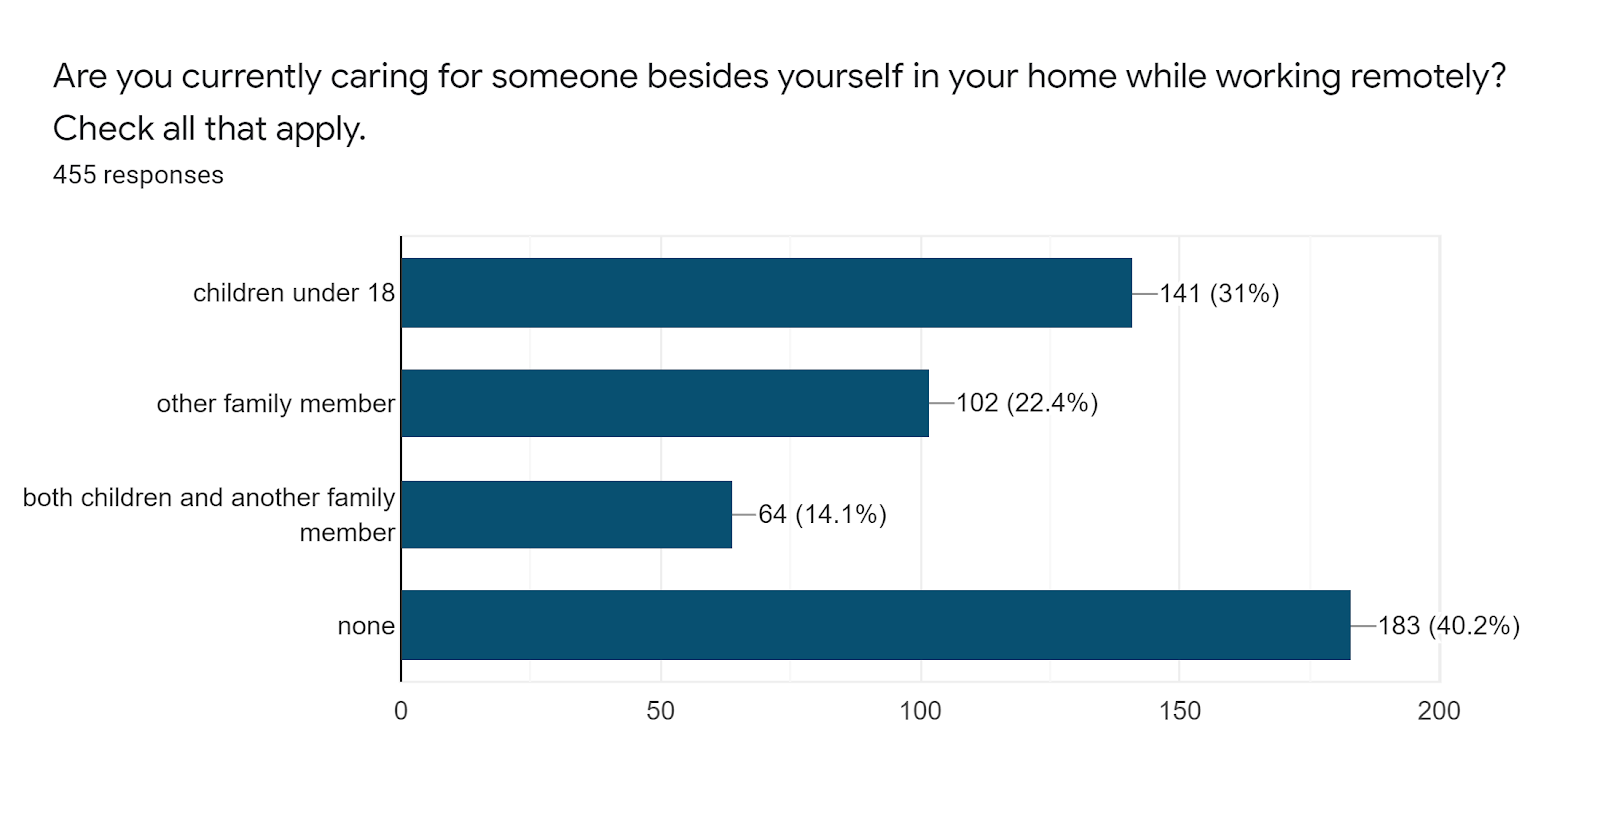 Forms response chart. Question title: Are you currently caring for someone besides yourself in your home while working remotely? Check all that apply.. Number of responses: 455 responses.